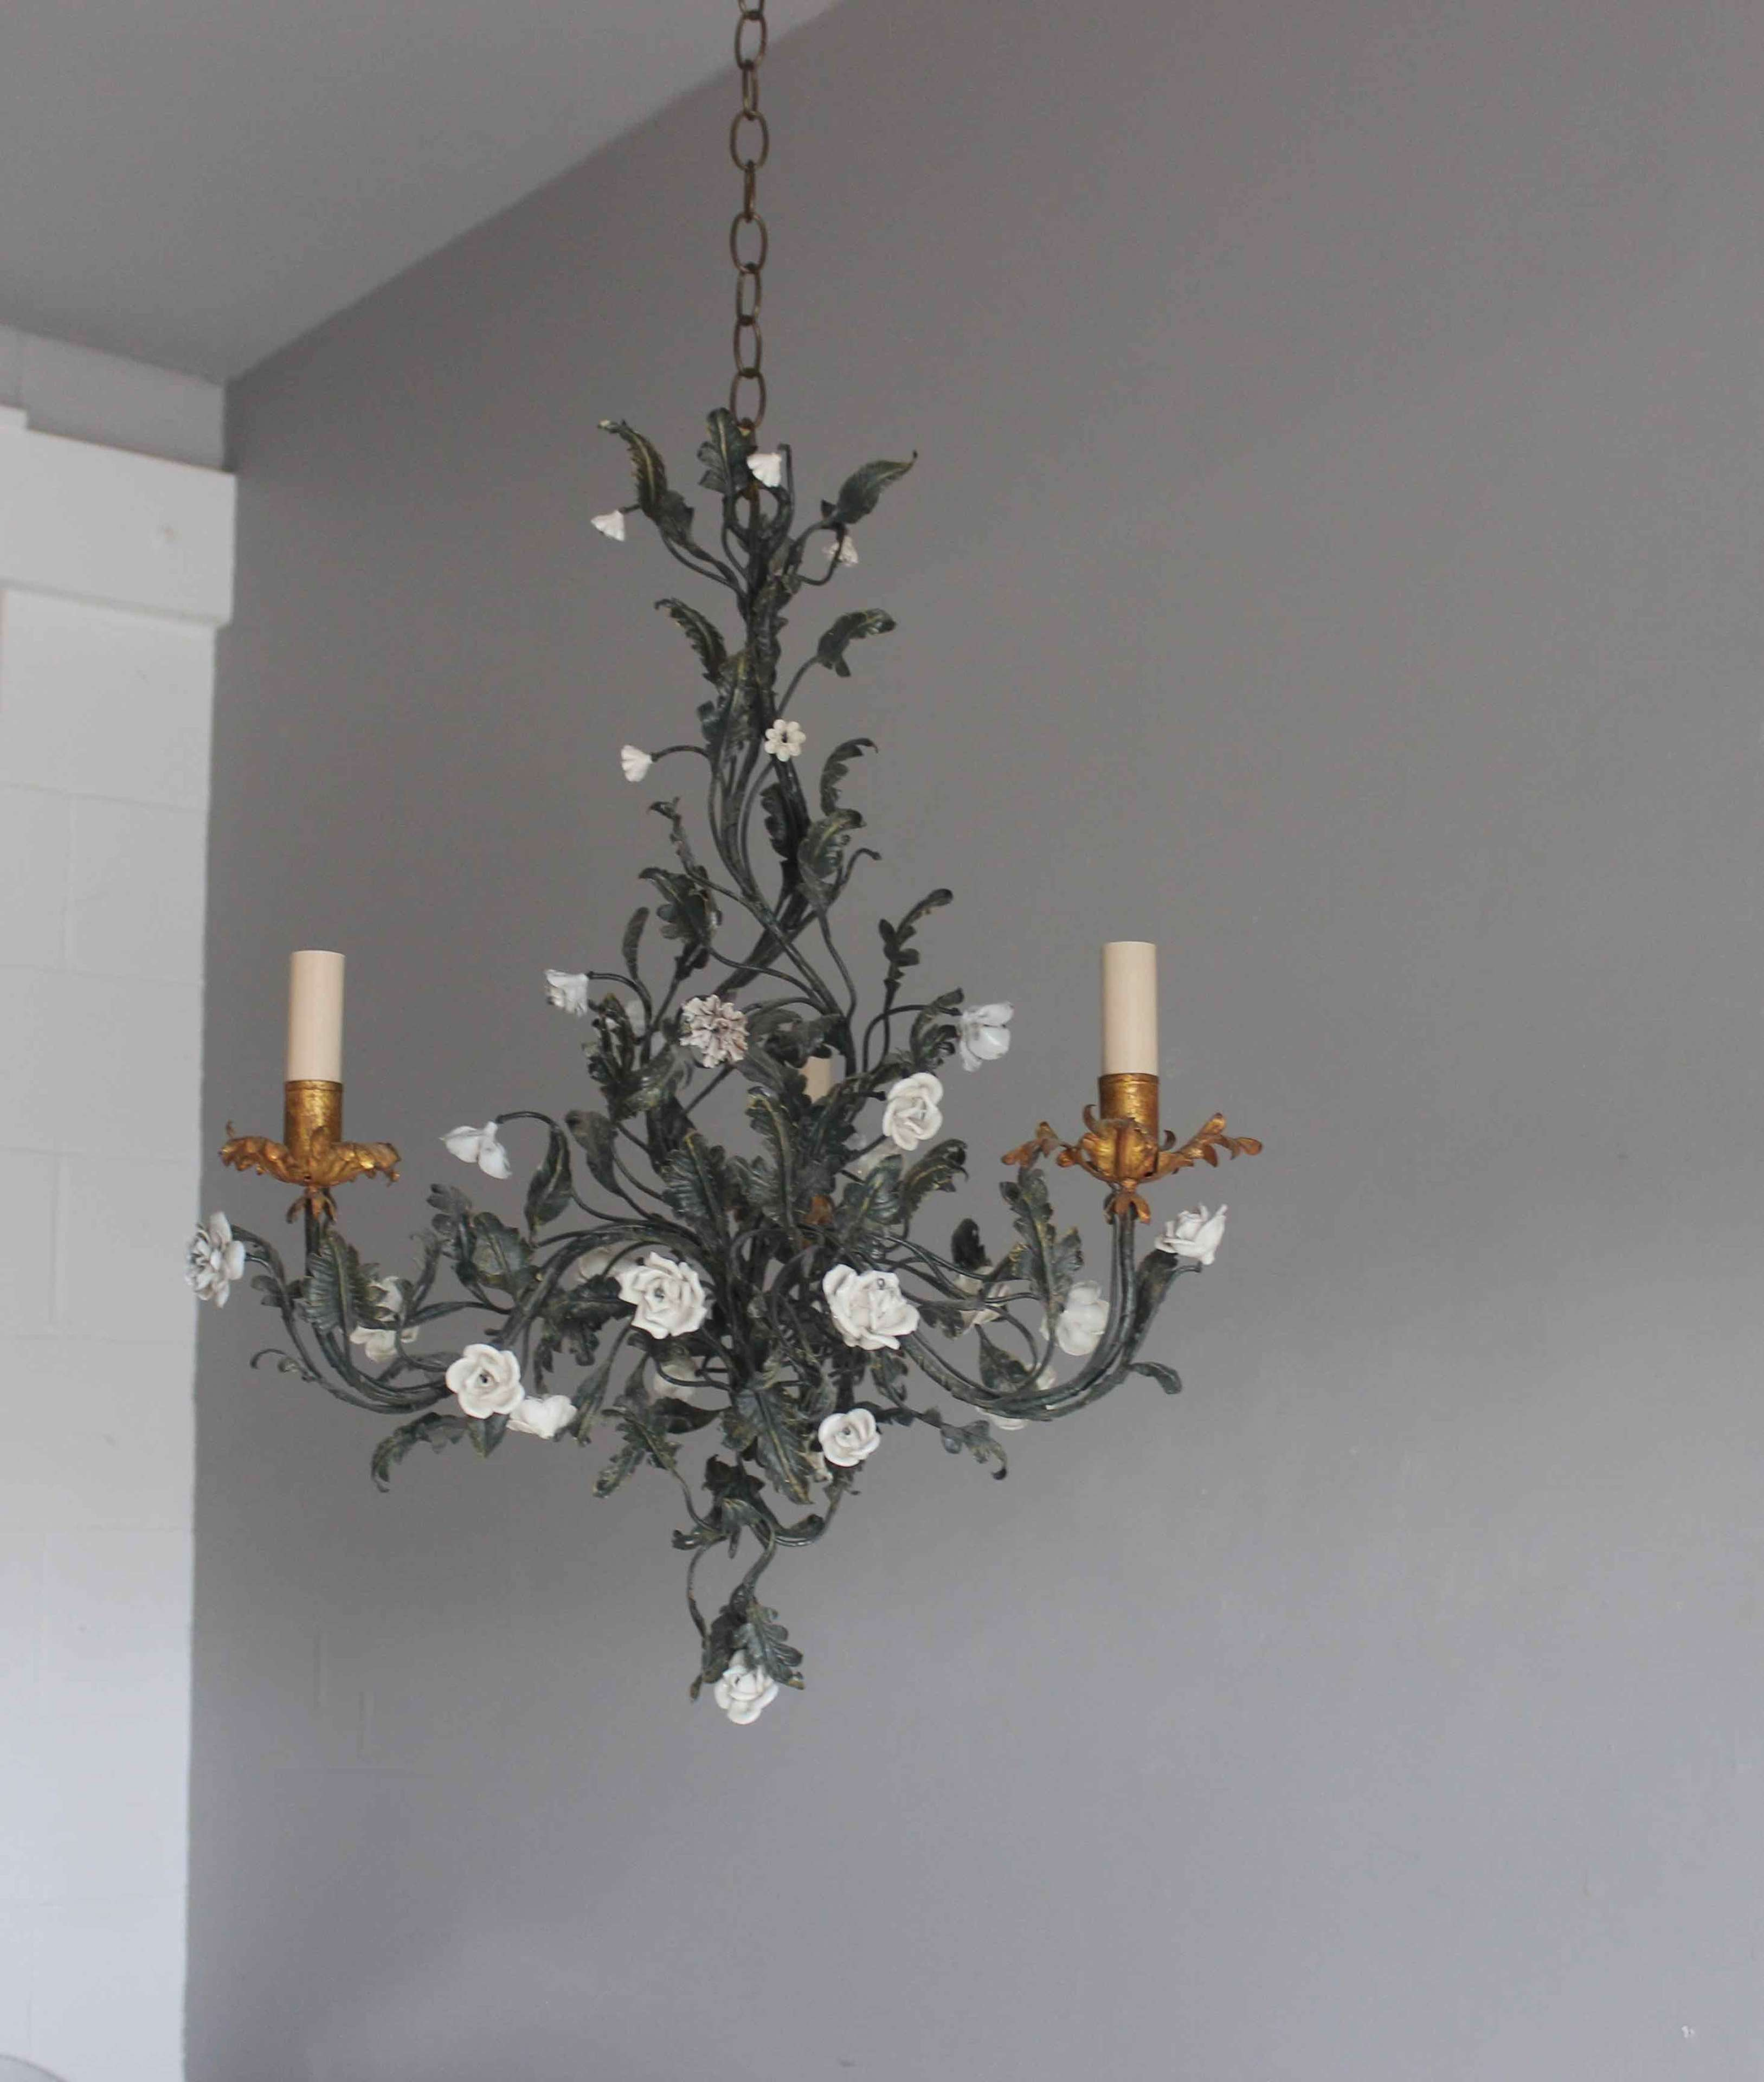 Delightful Italian antique chandelier with leaves and flowers